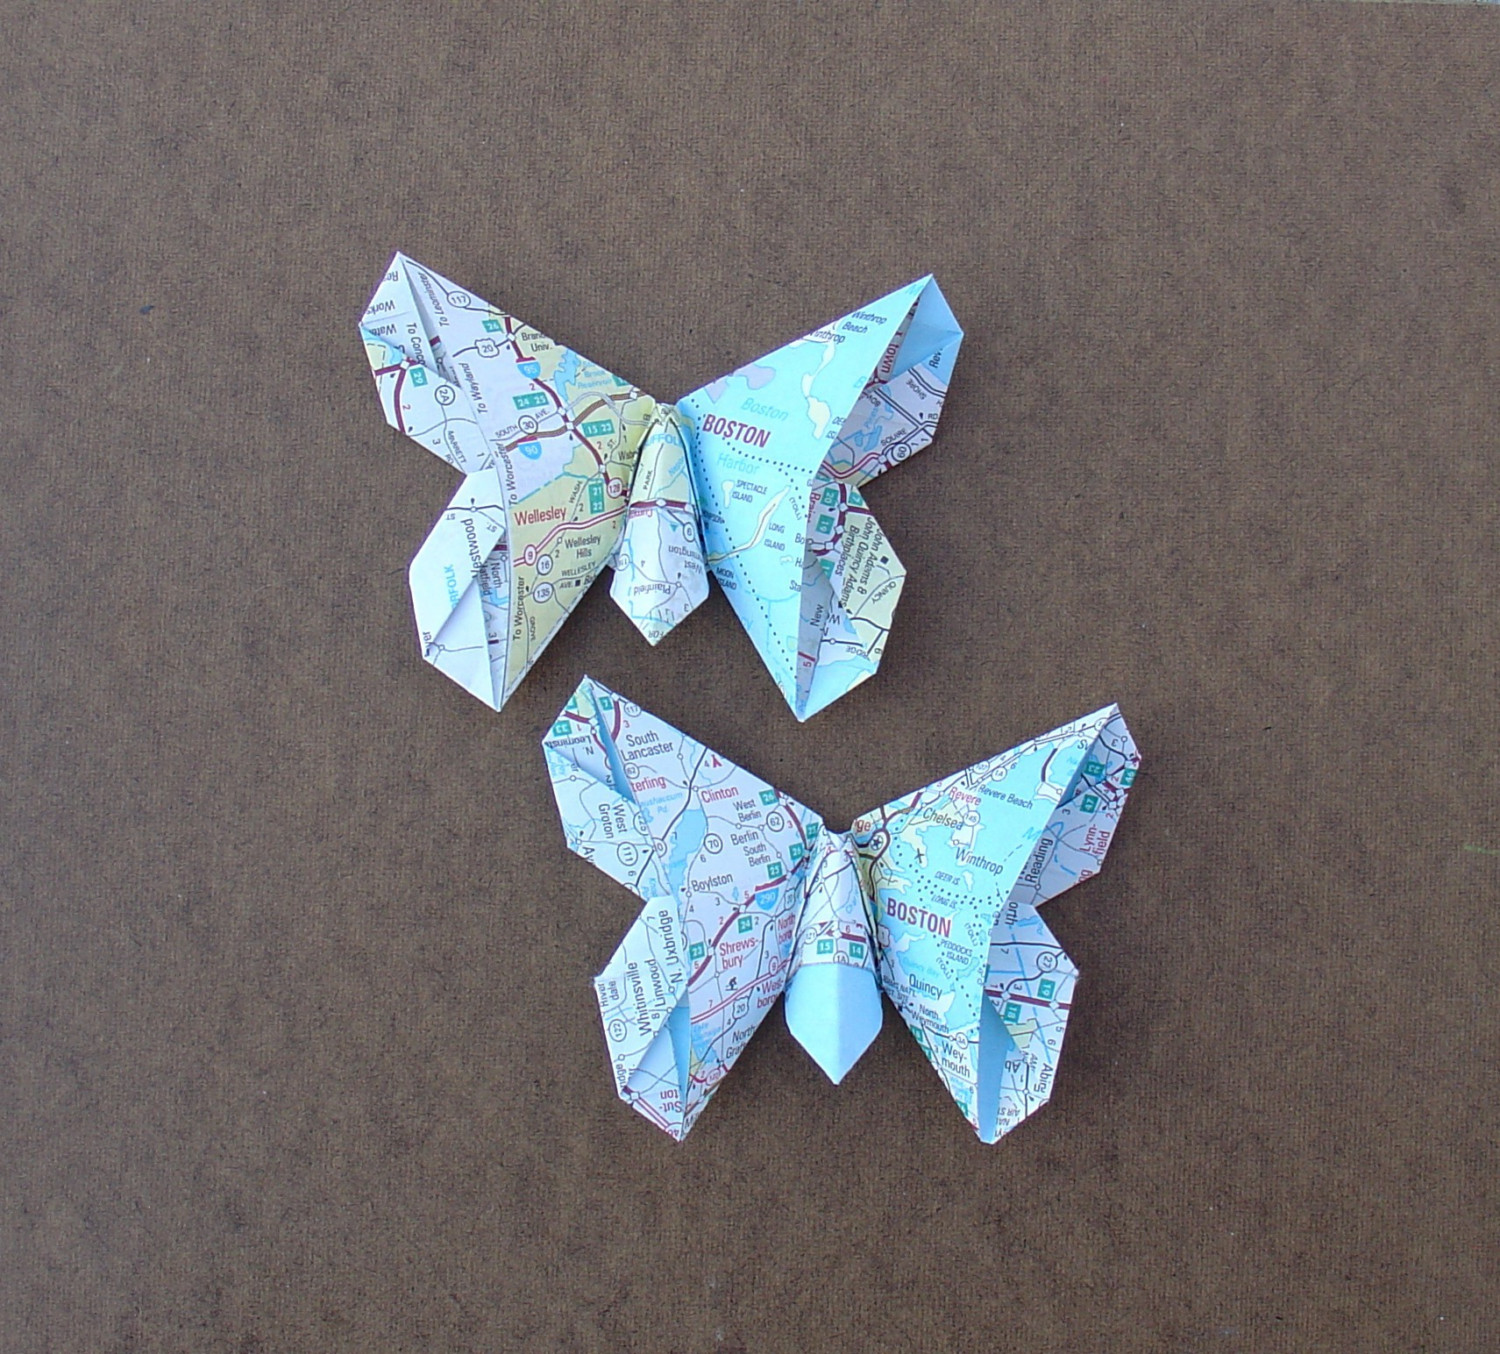 butterfly, create from a map